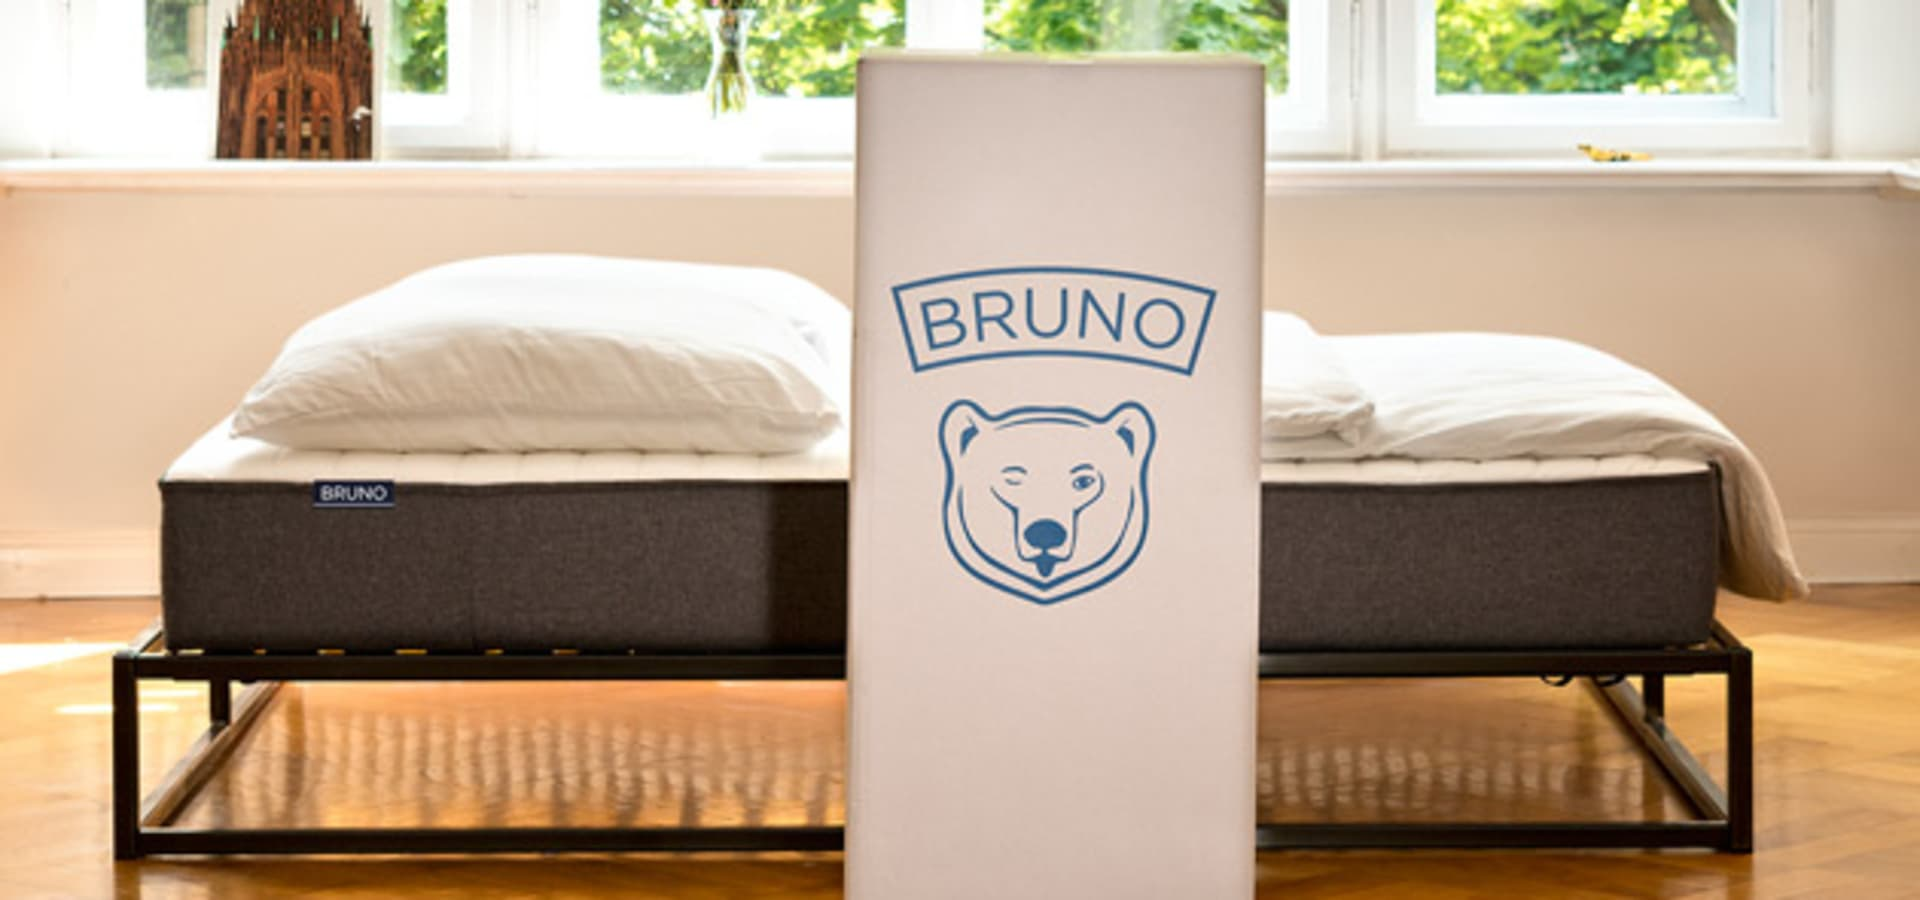 bruno matelas le matelas bruno en situation dans sa. Black Bedroom Furniture Sets. Home Design Ideas